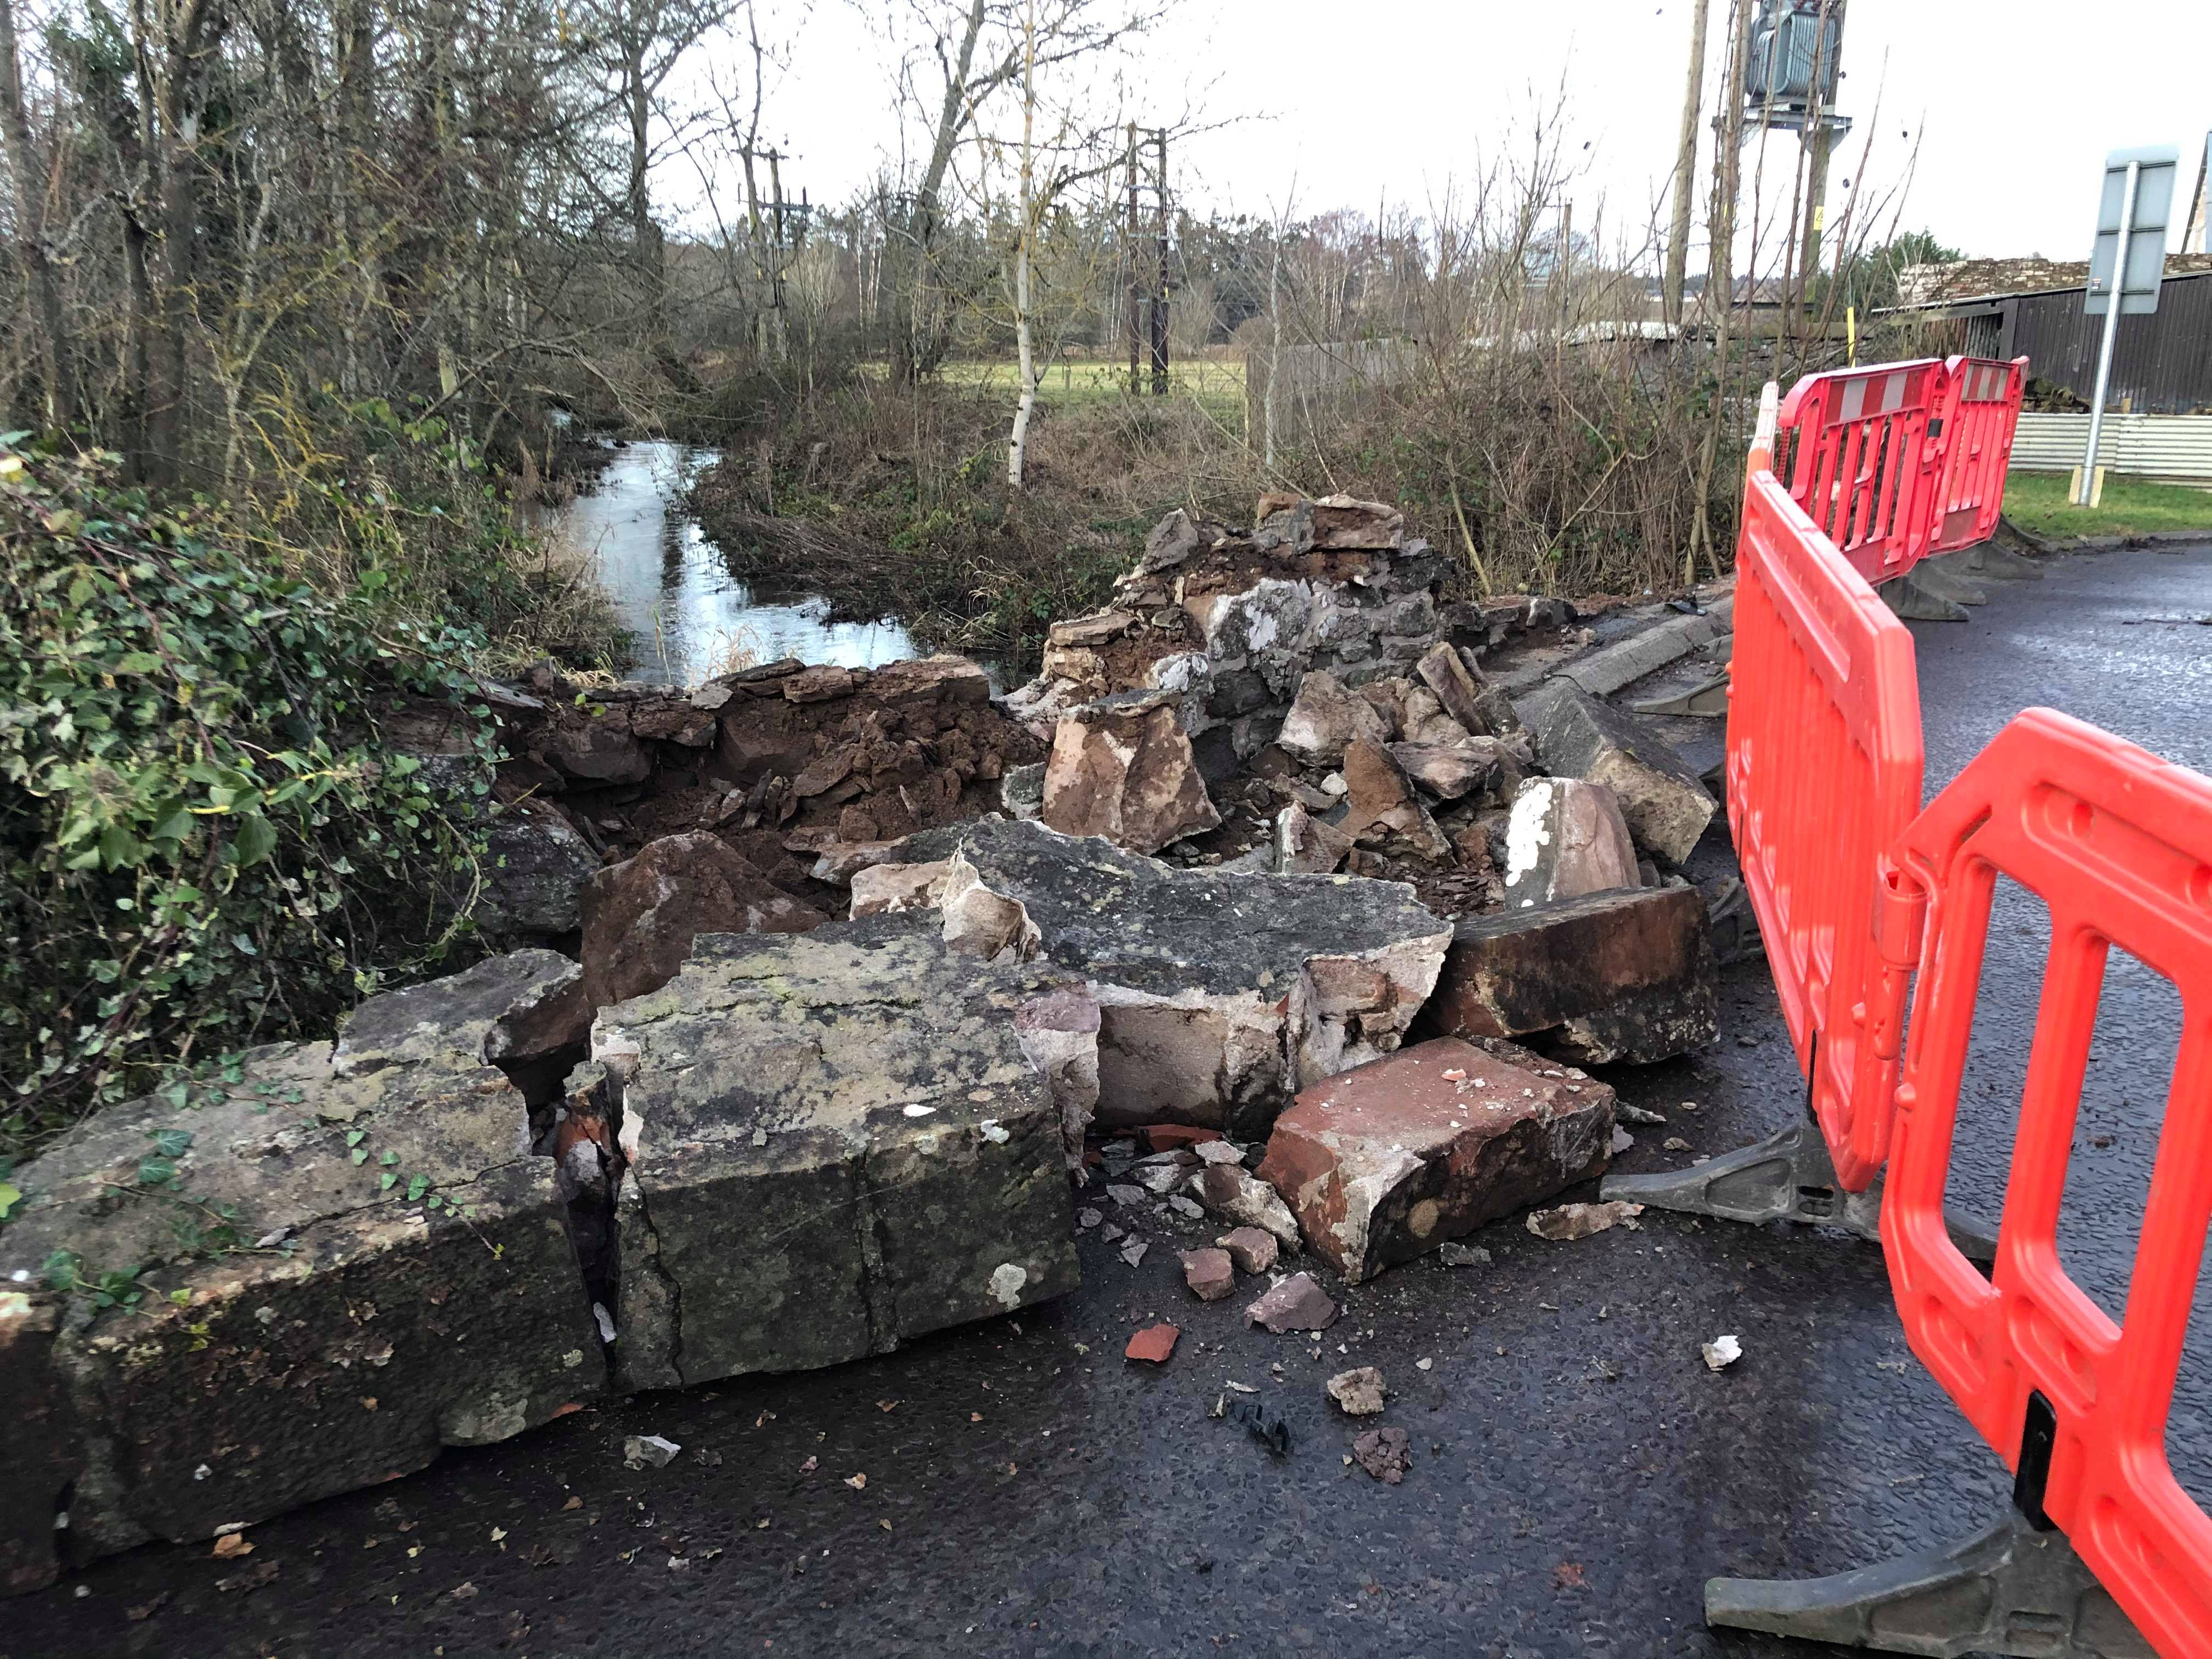 Perth and Kinross Council closed the Lade Bridge in Ruthvenfield after it took 'substantial damage' when it was hit by a vehicle.